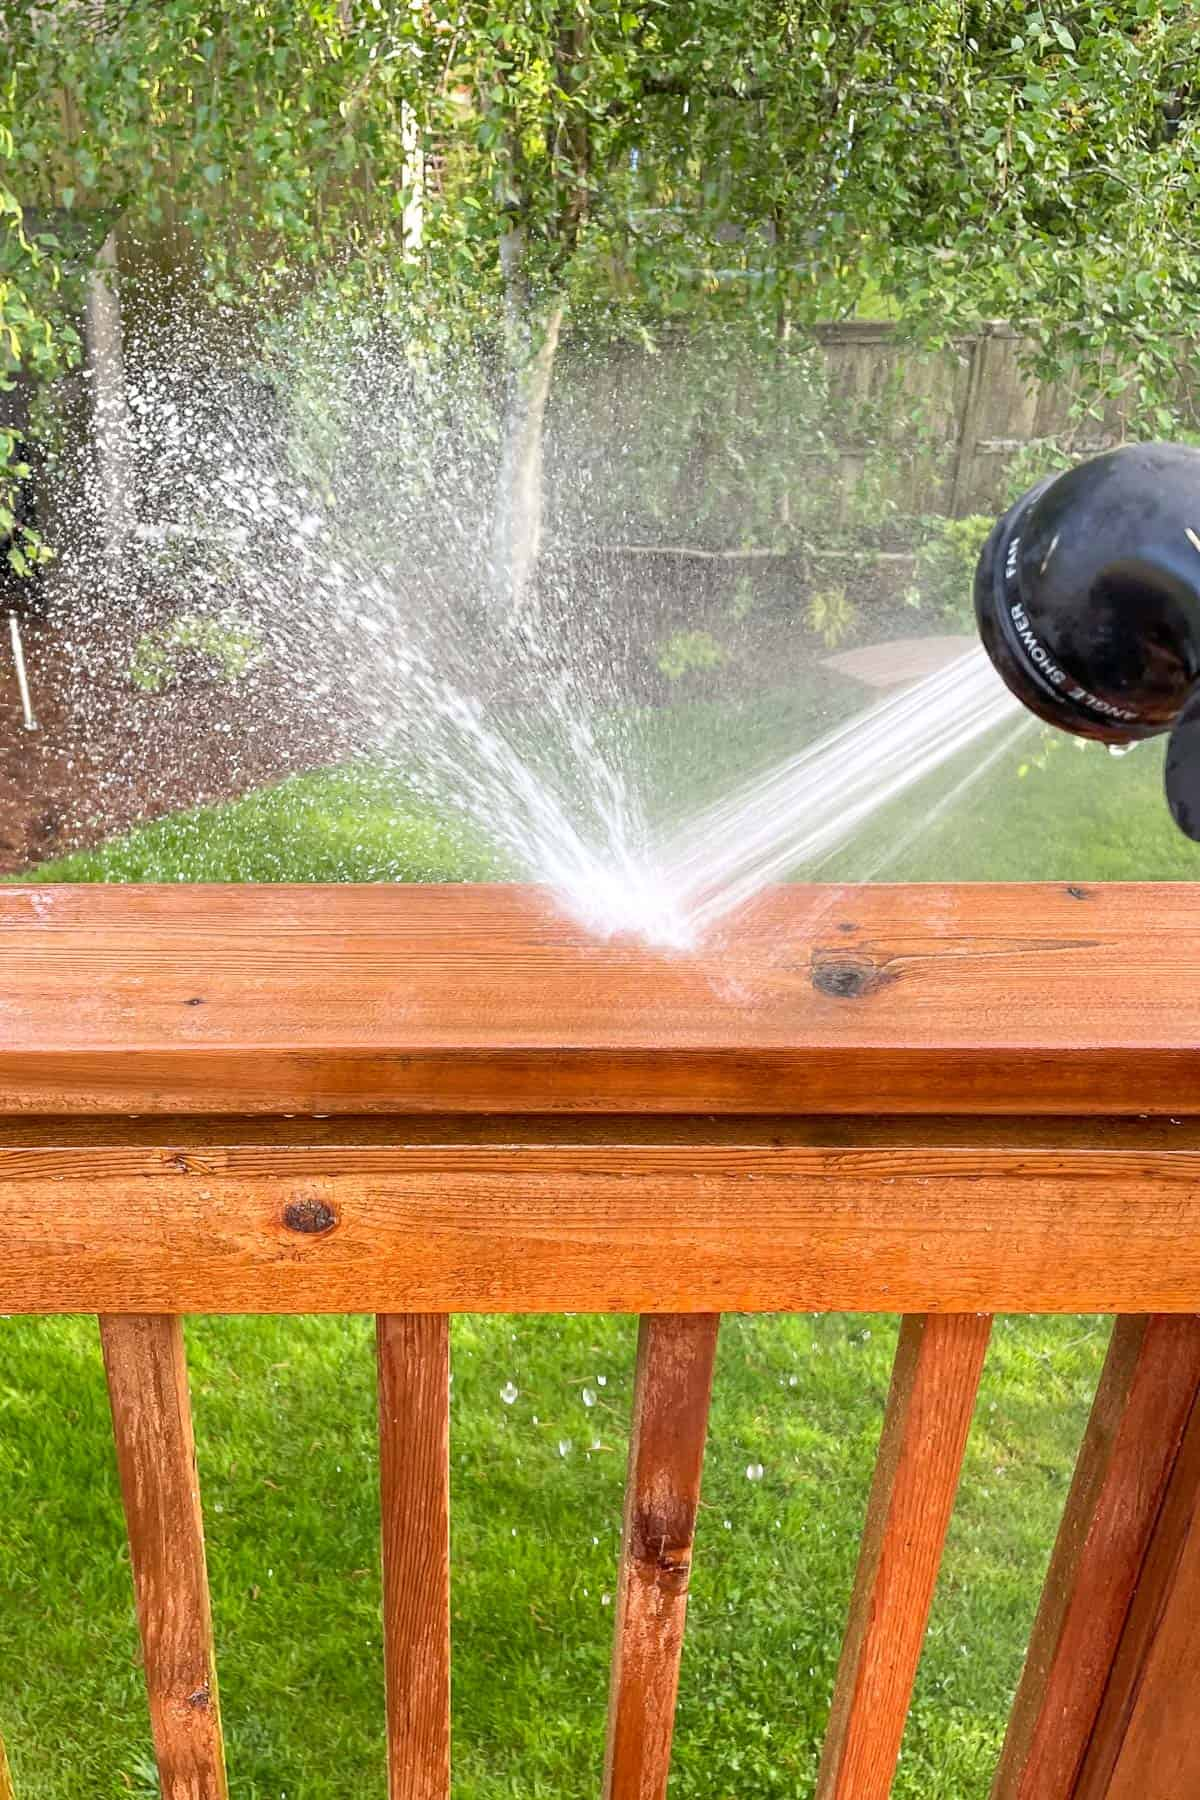 rinsing deck railing with a hose after applying cleaner